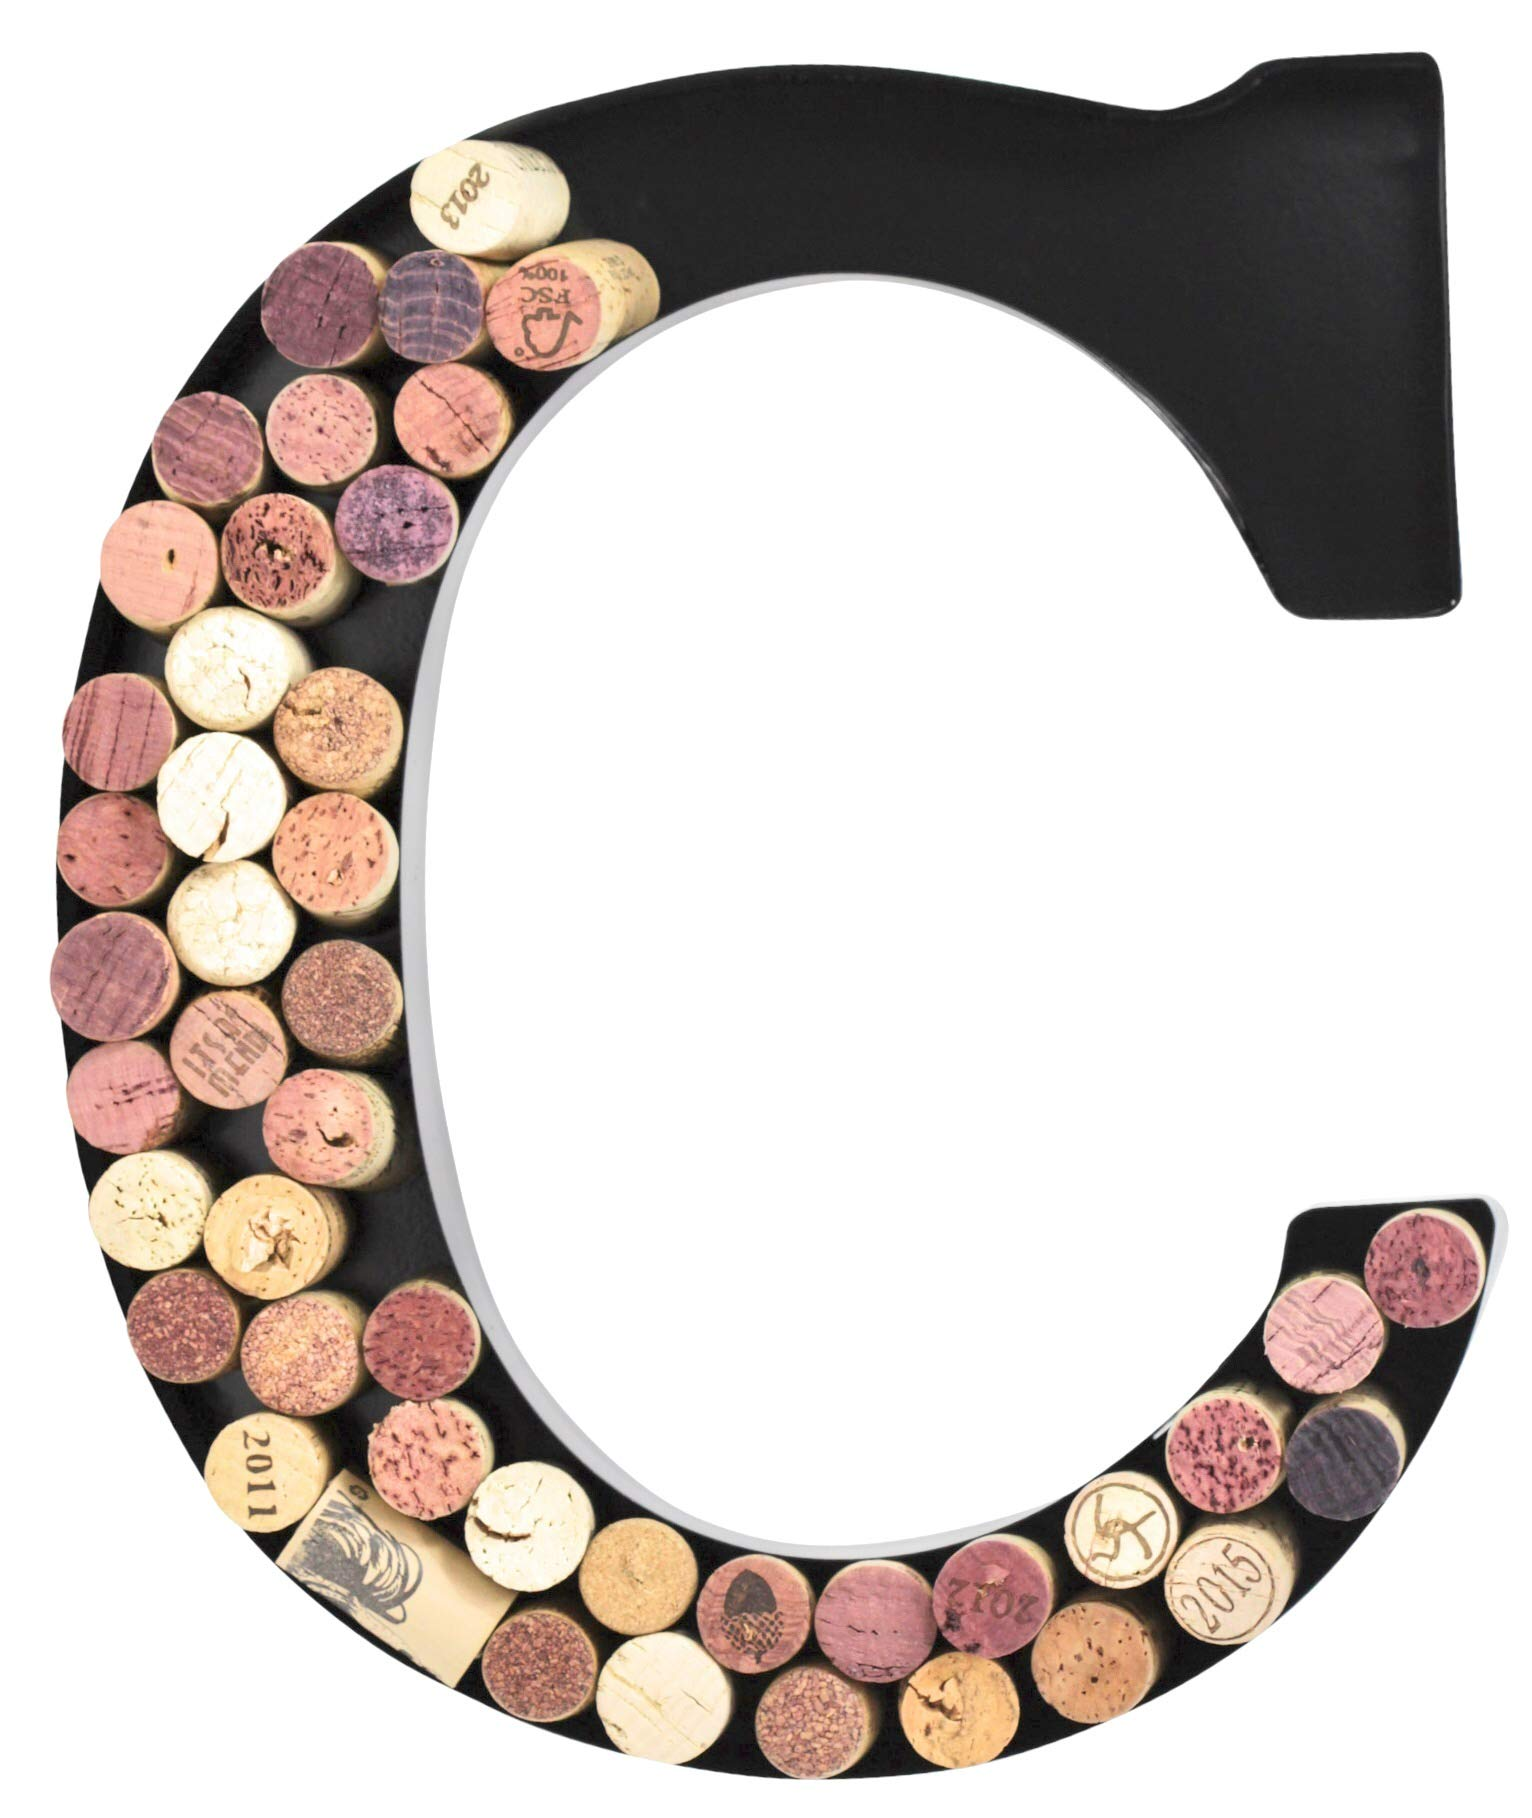 Metal Letter Wine Cork Holder Monogram w/Free Wall Mount Kit A-Z, (C) by Made Easy Kit